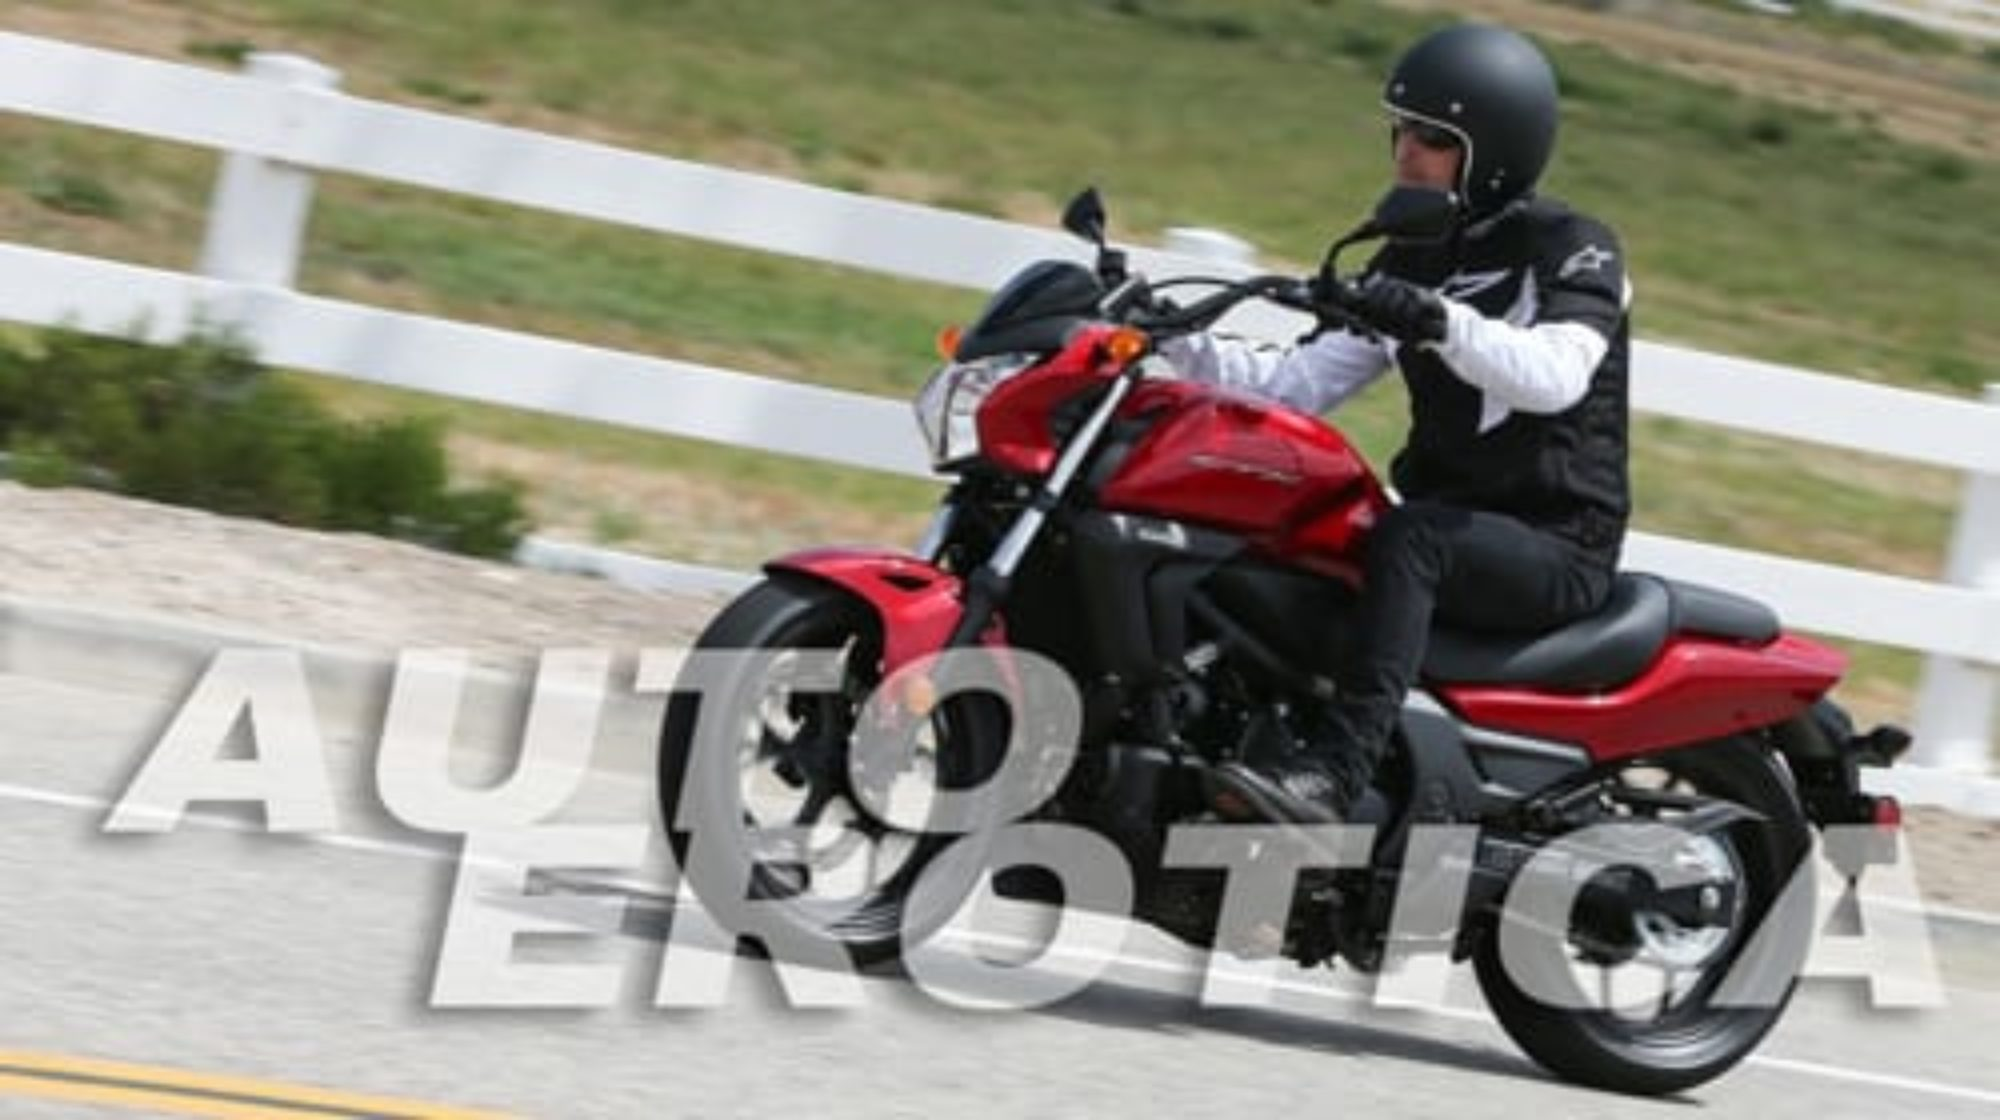 Honda CTX700 is the Automatic Transmission Motorcycle for